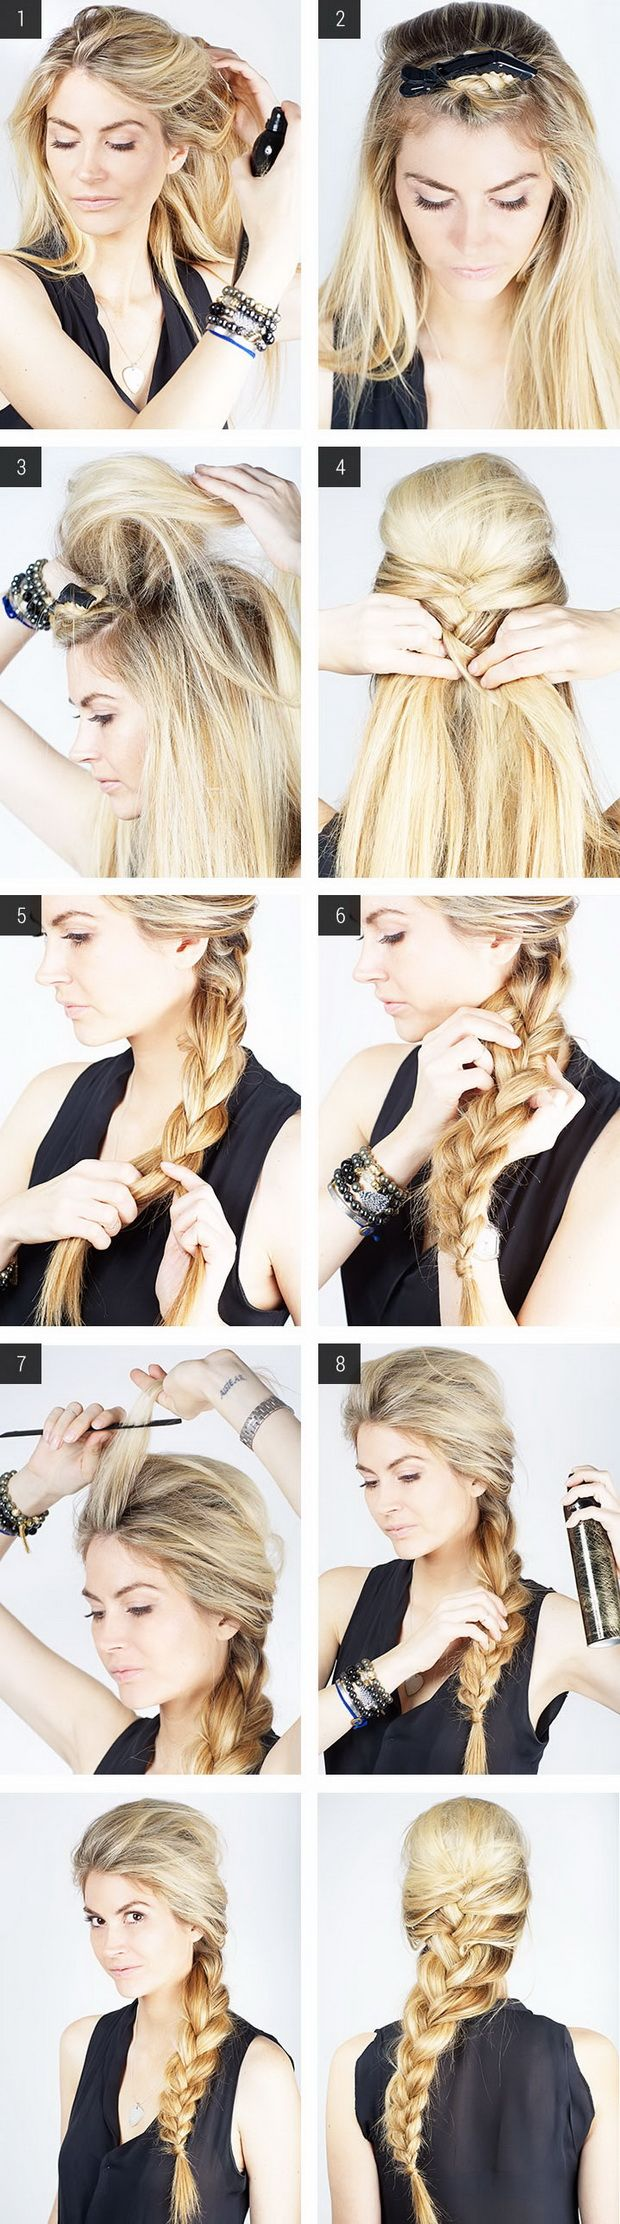 Messy french braid with poof like elsaus middle school makeup